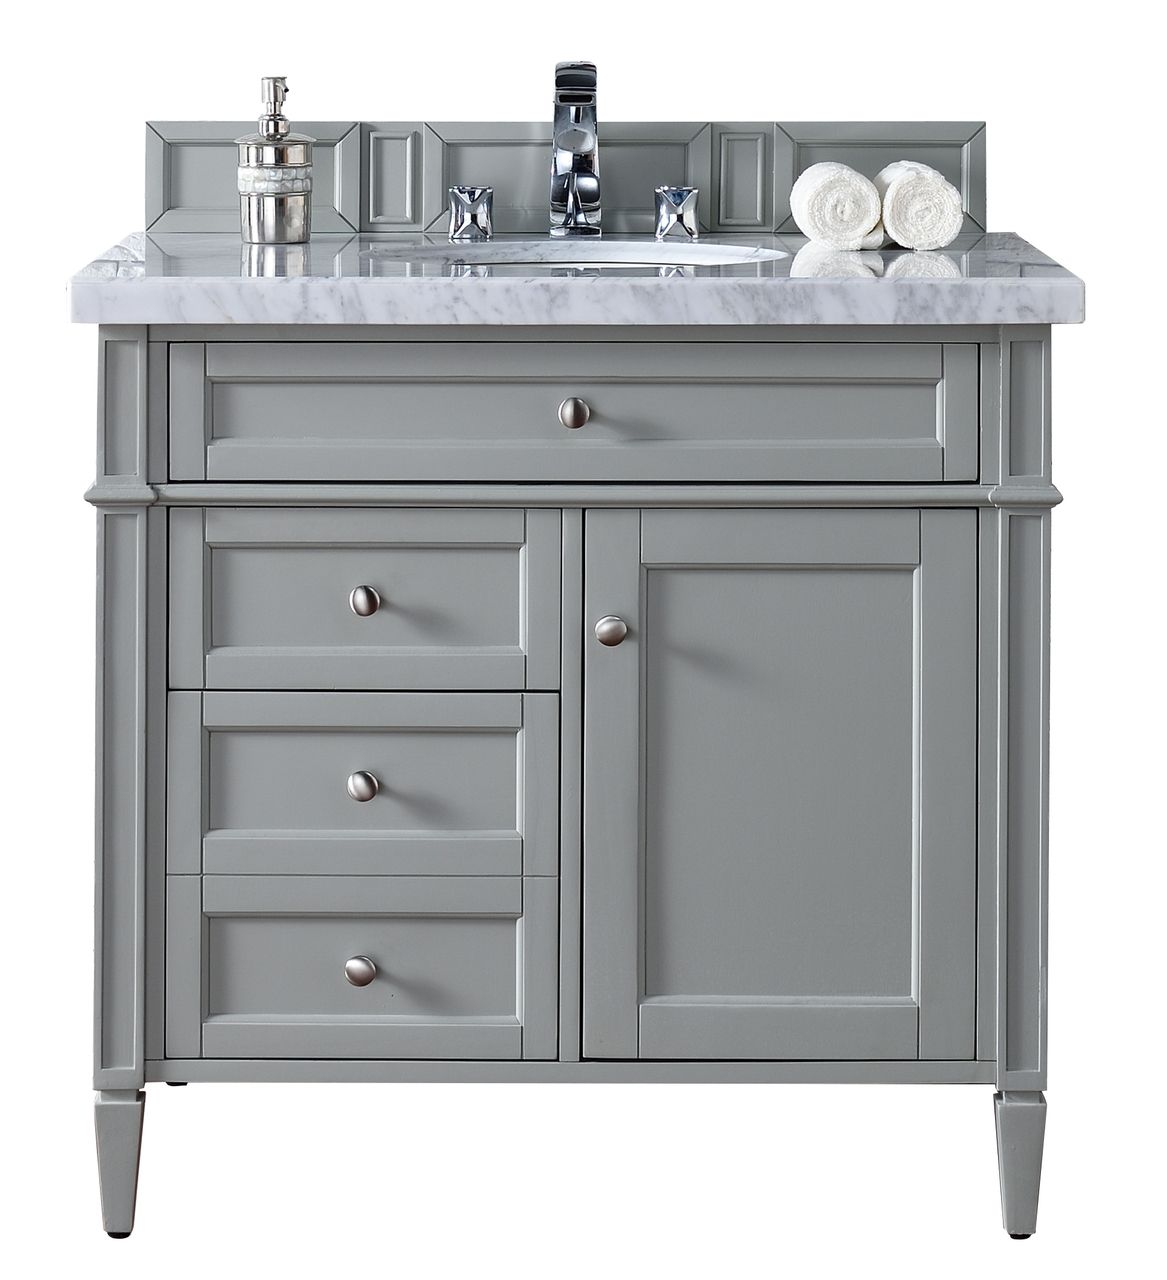 36 brittany single bathroom vanity urban gray